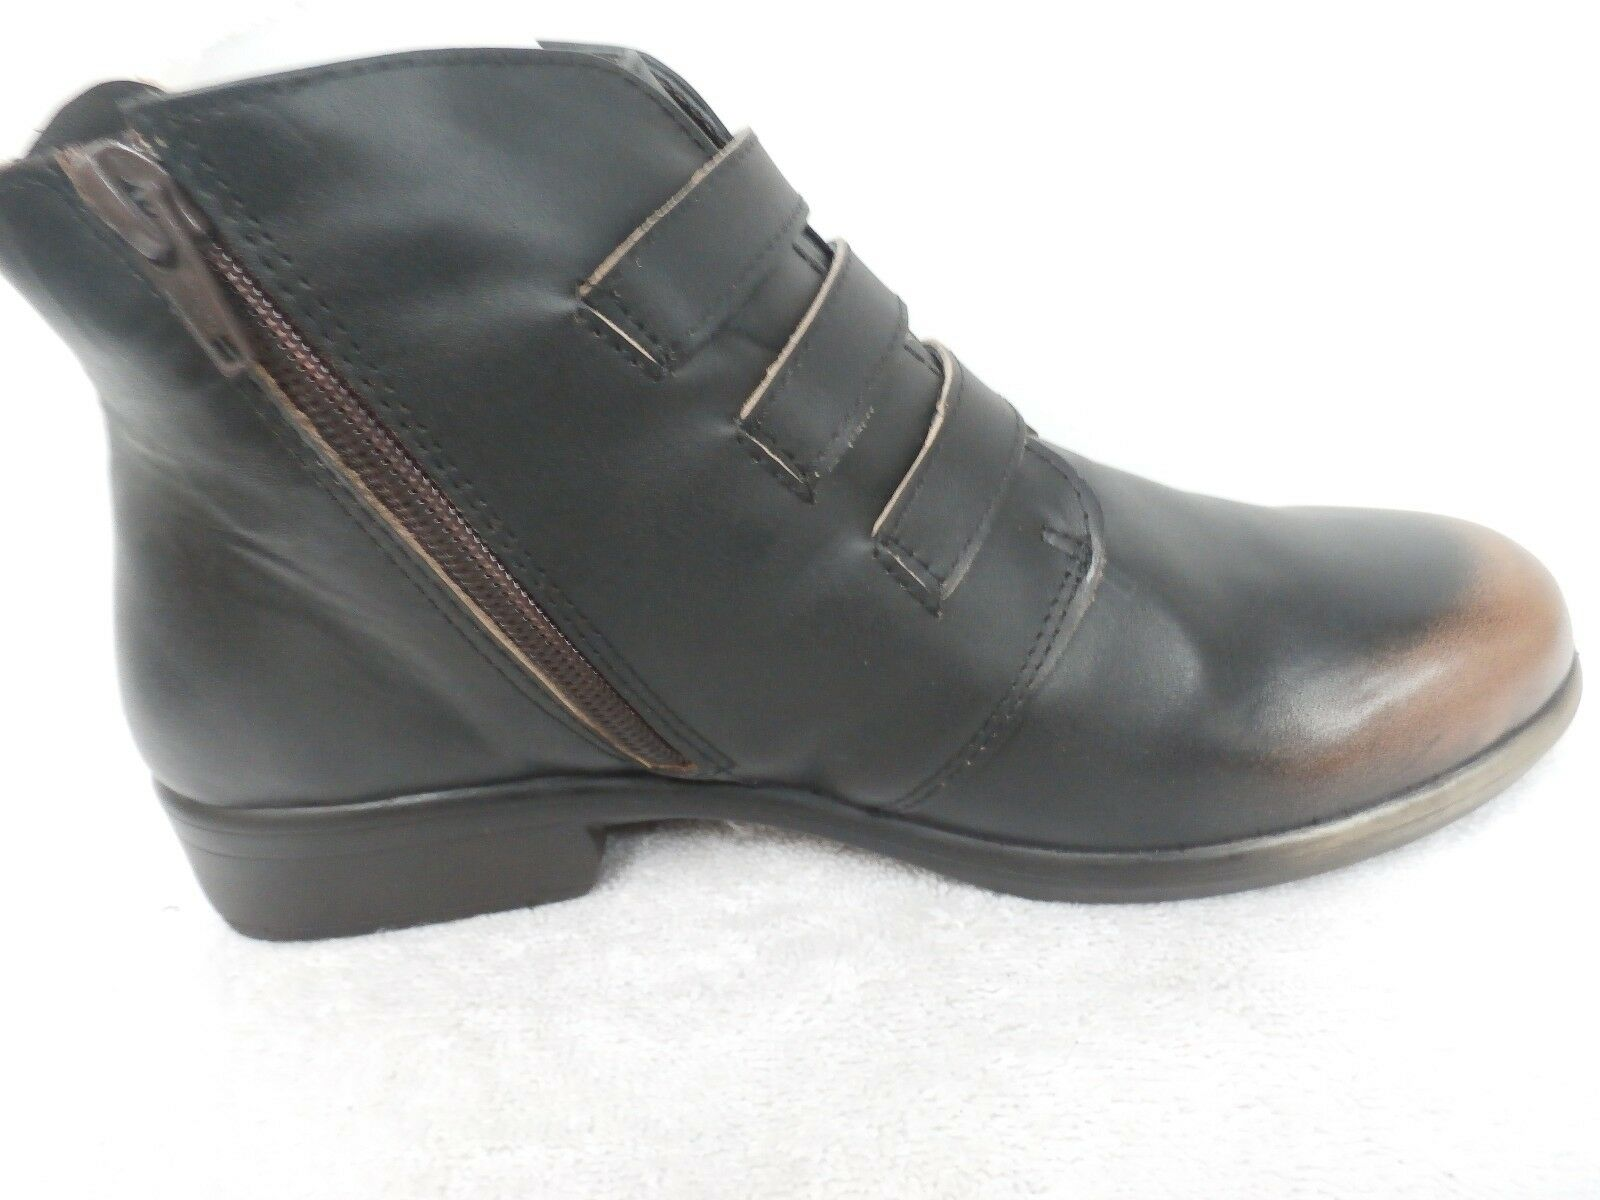 Naot Leather Ankle Boots w  Buckle Detail - Calima VOLCANIC Size 36 (5)